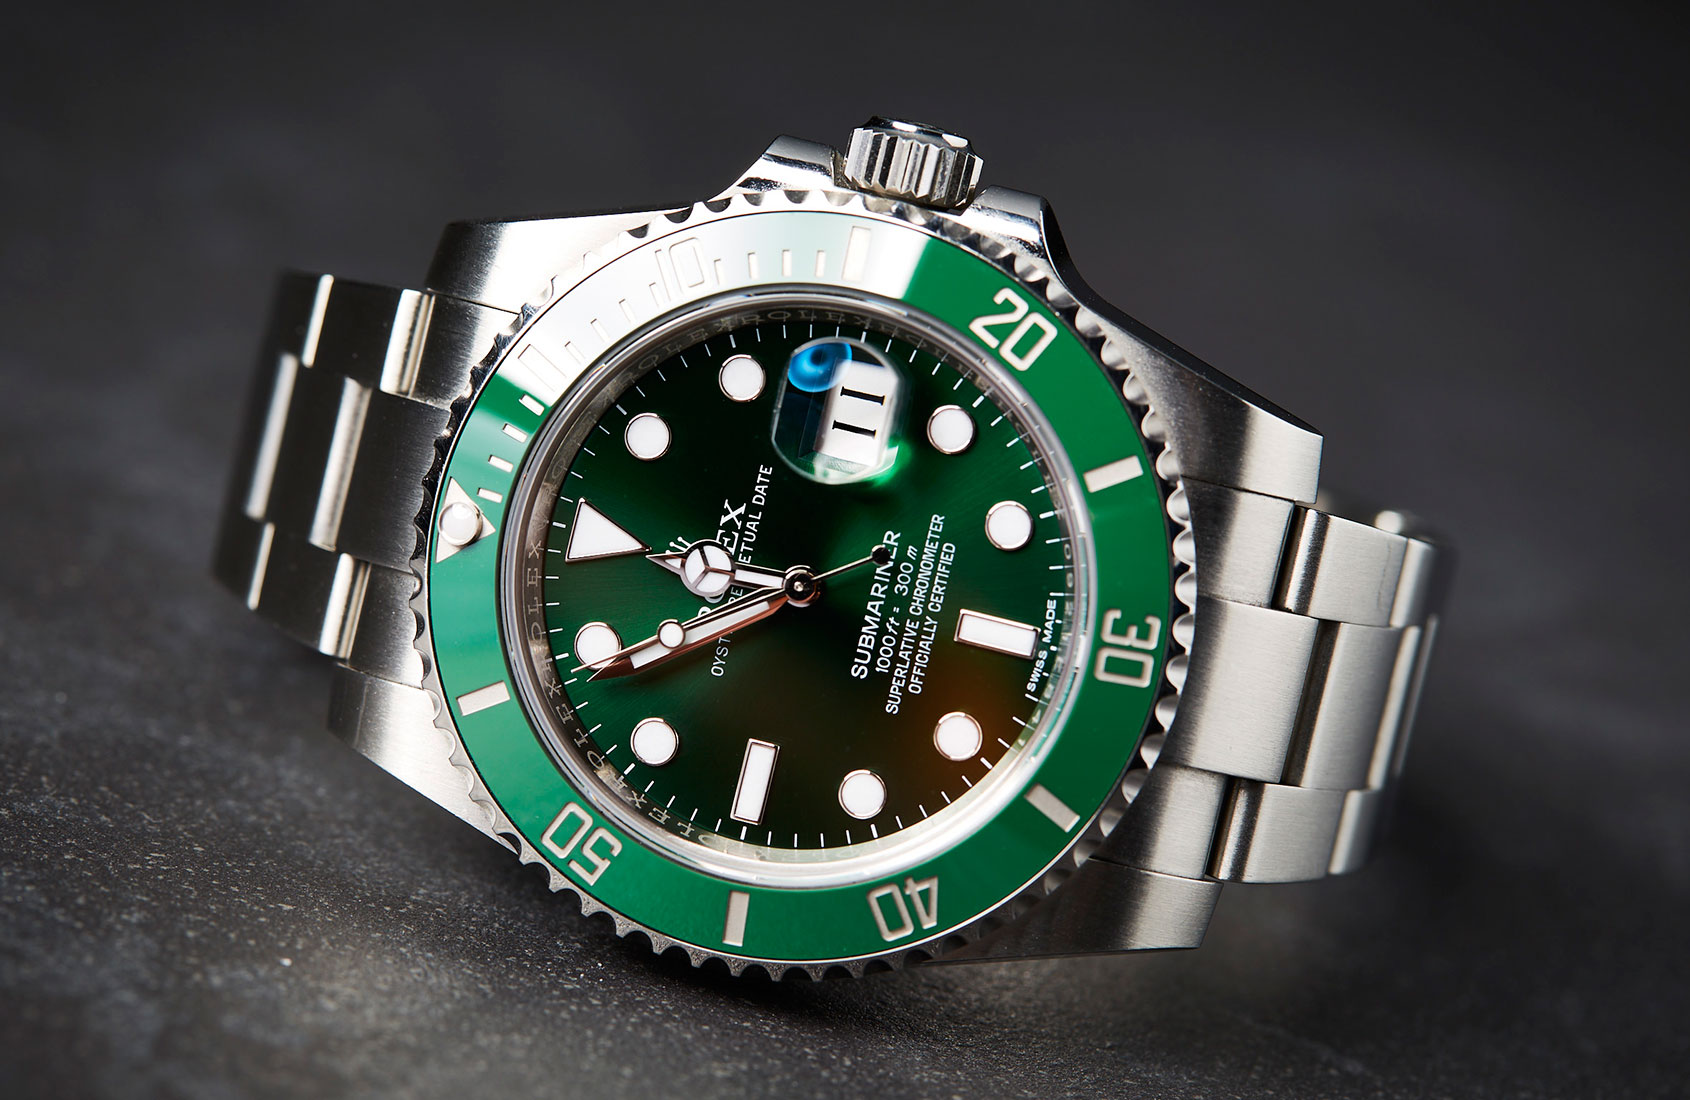 Get your hands on a Rolex Hulk (right now) and don't be left green with envy